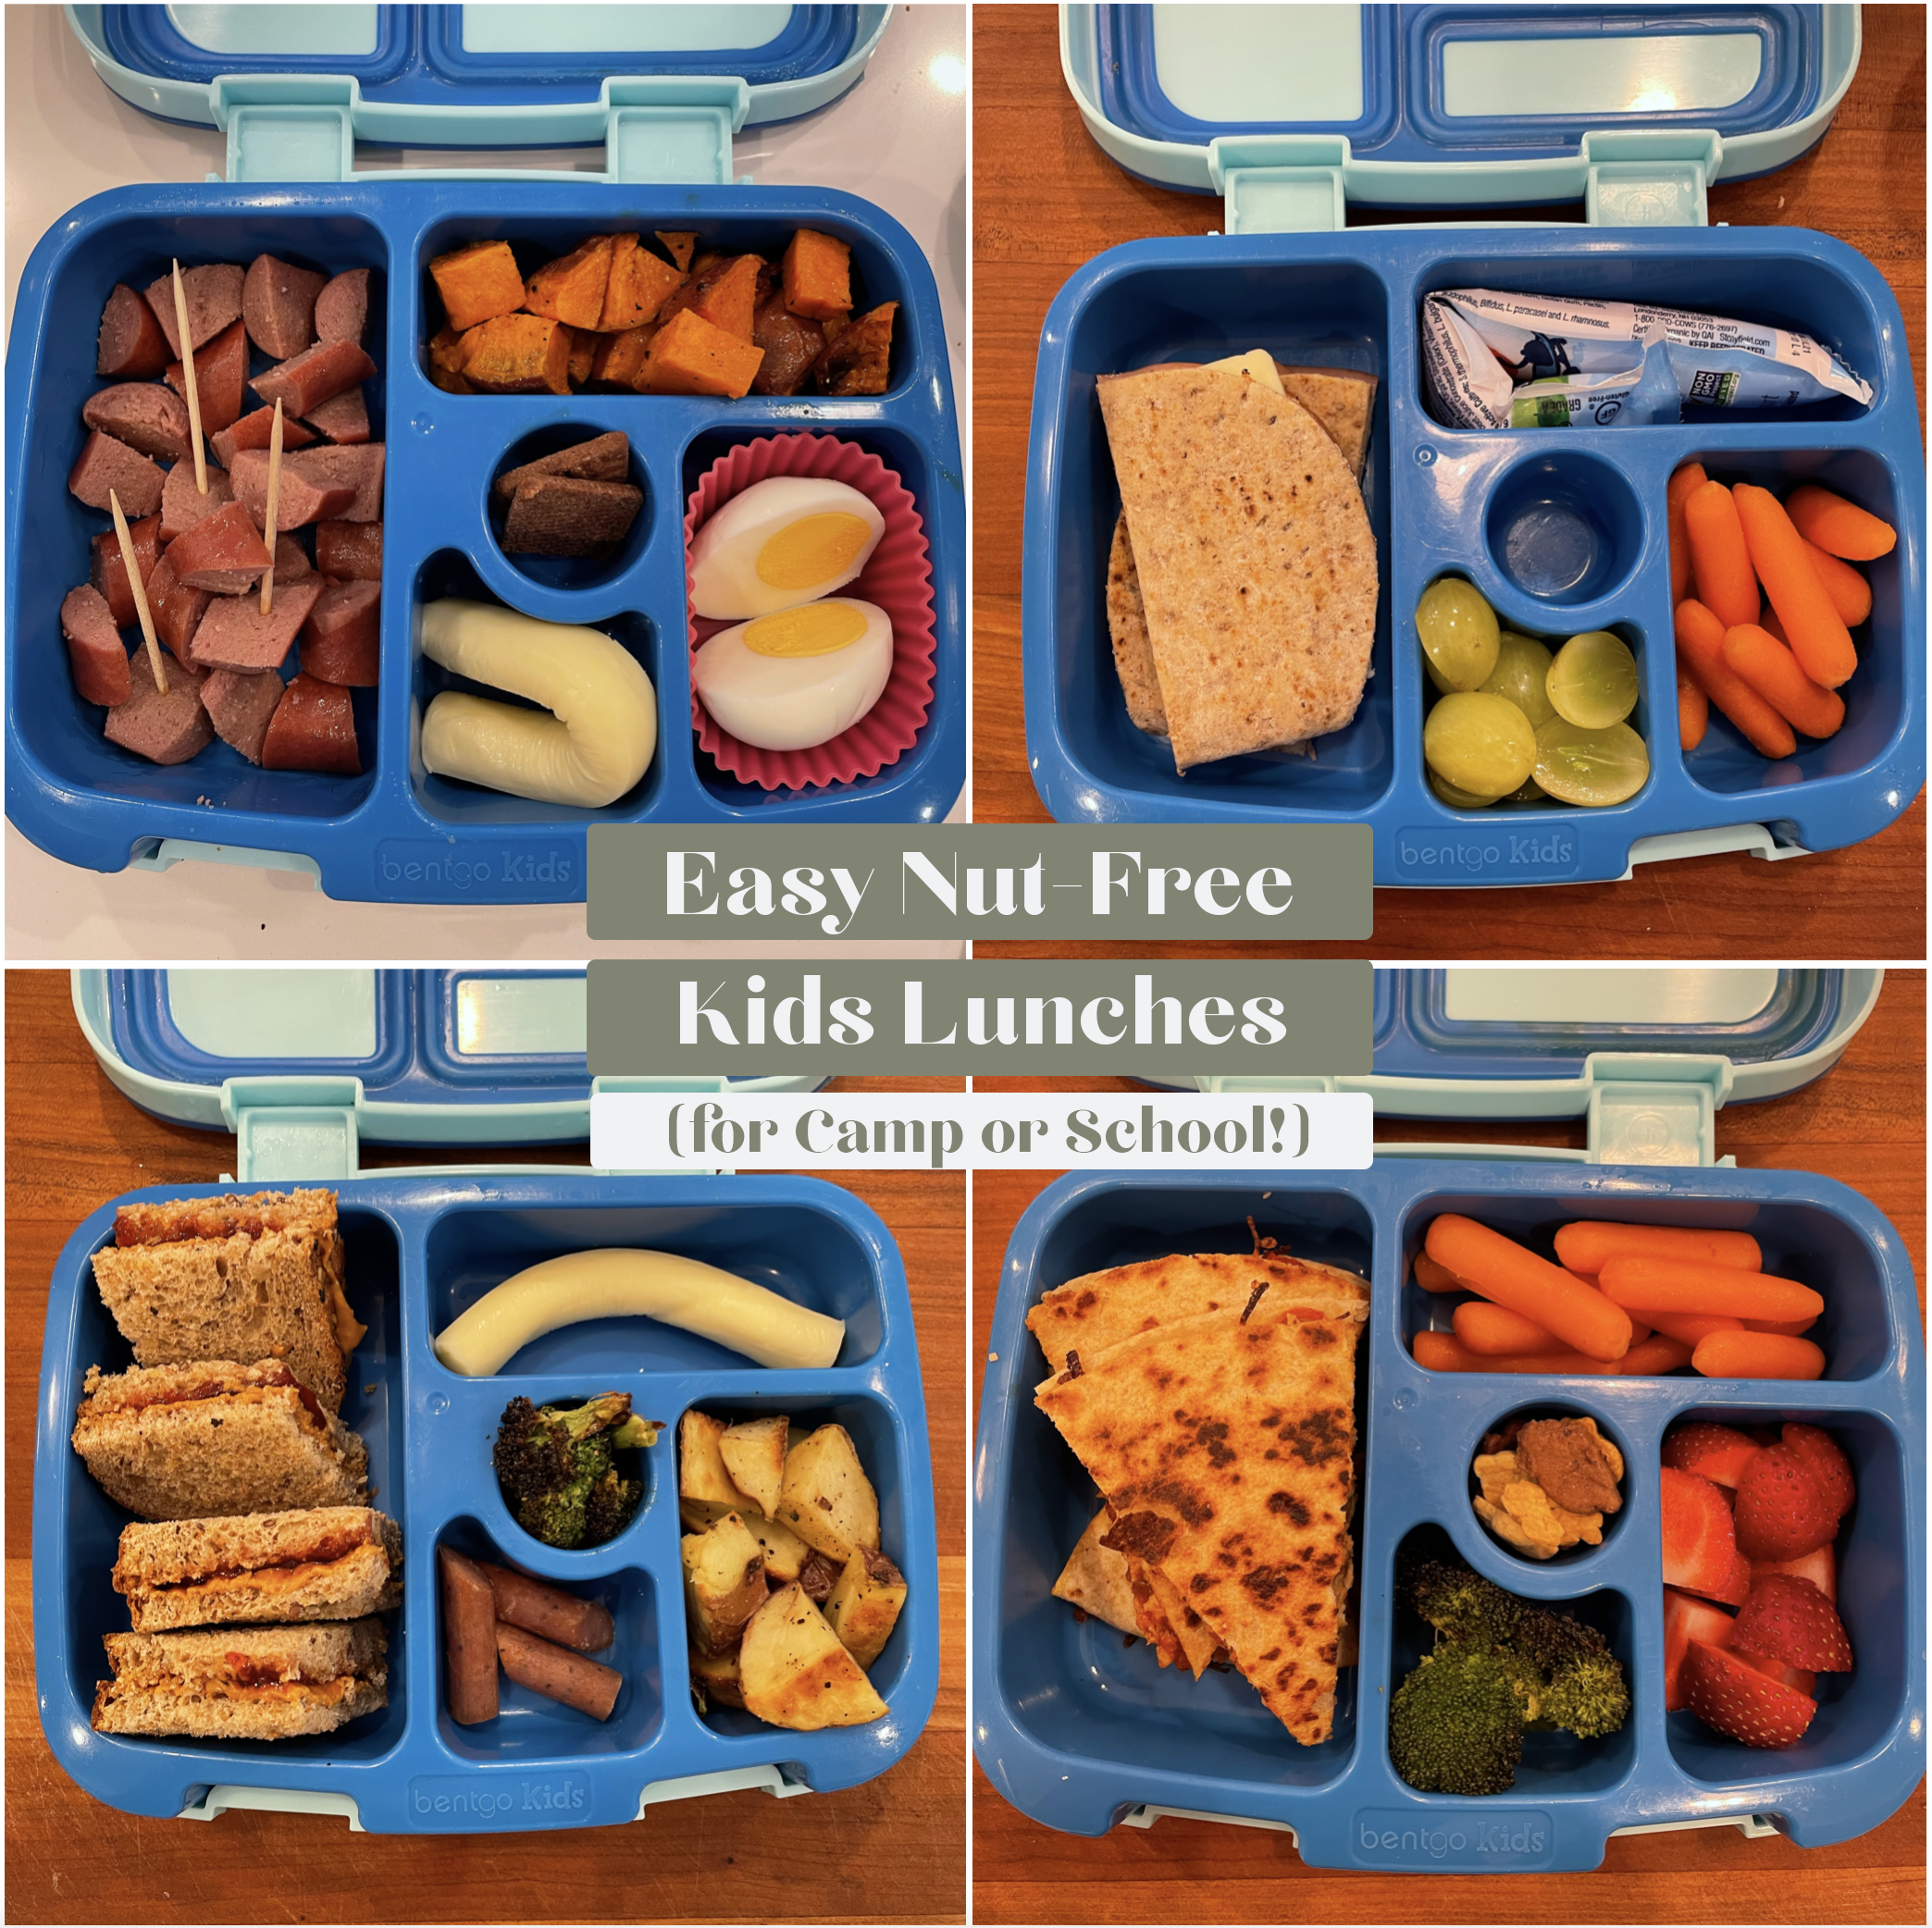 Easy Nut-Free Lunch Ideas for Kids